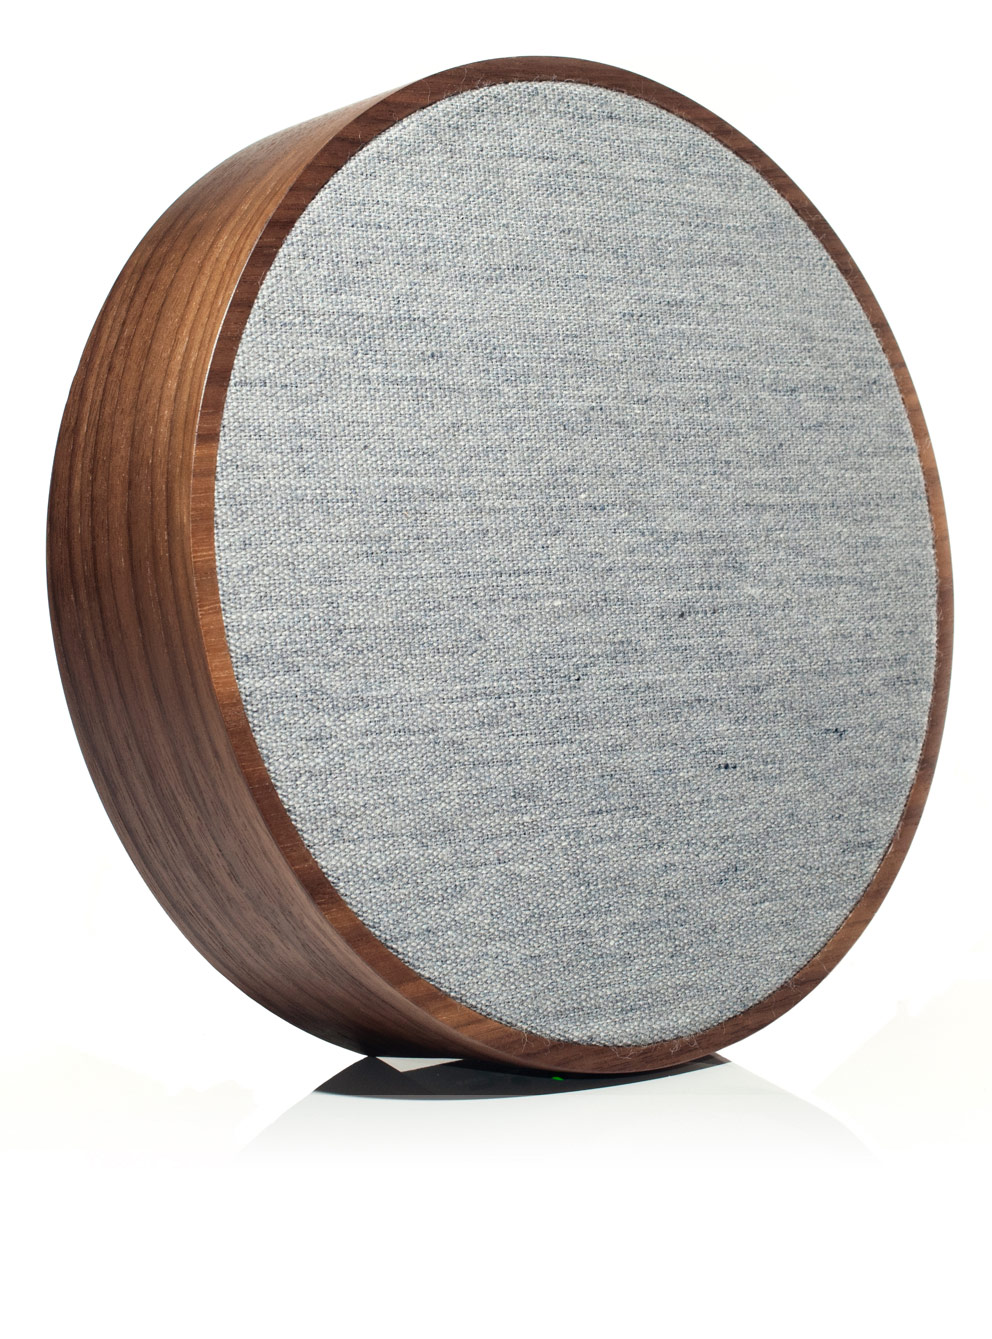 Tivoli Audio Sphera Wireless Speaker- Walnut Grey by Tivoli Audio